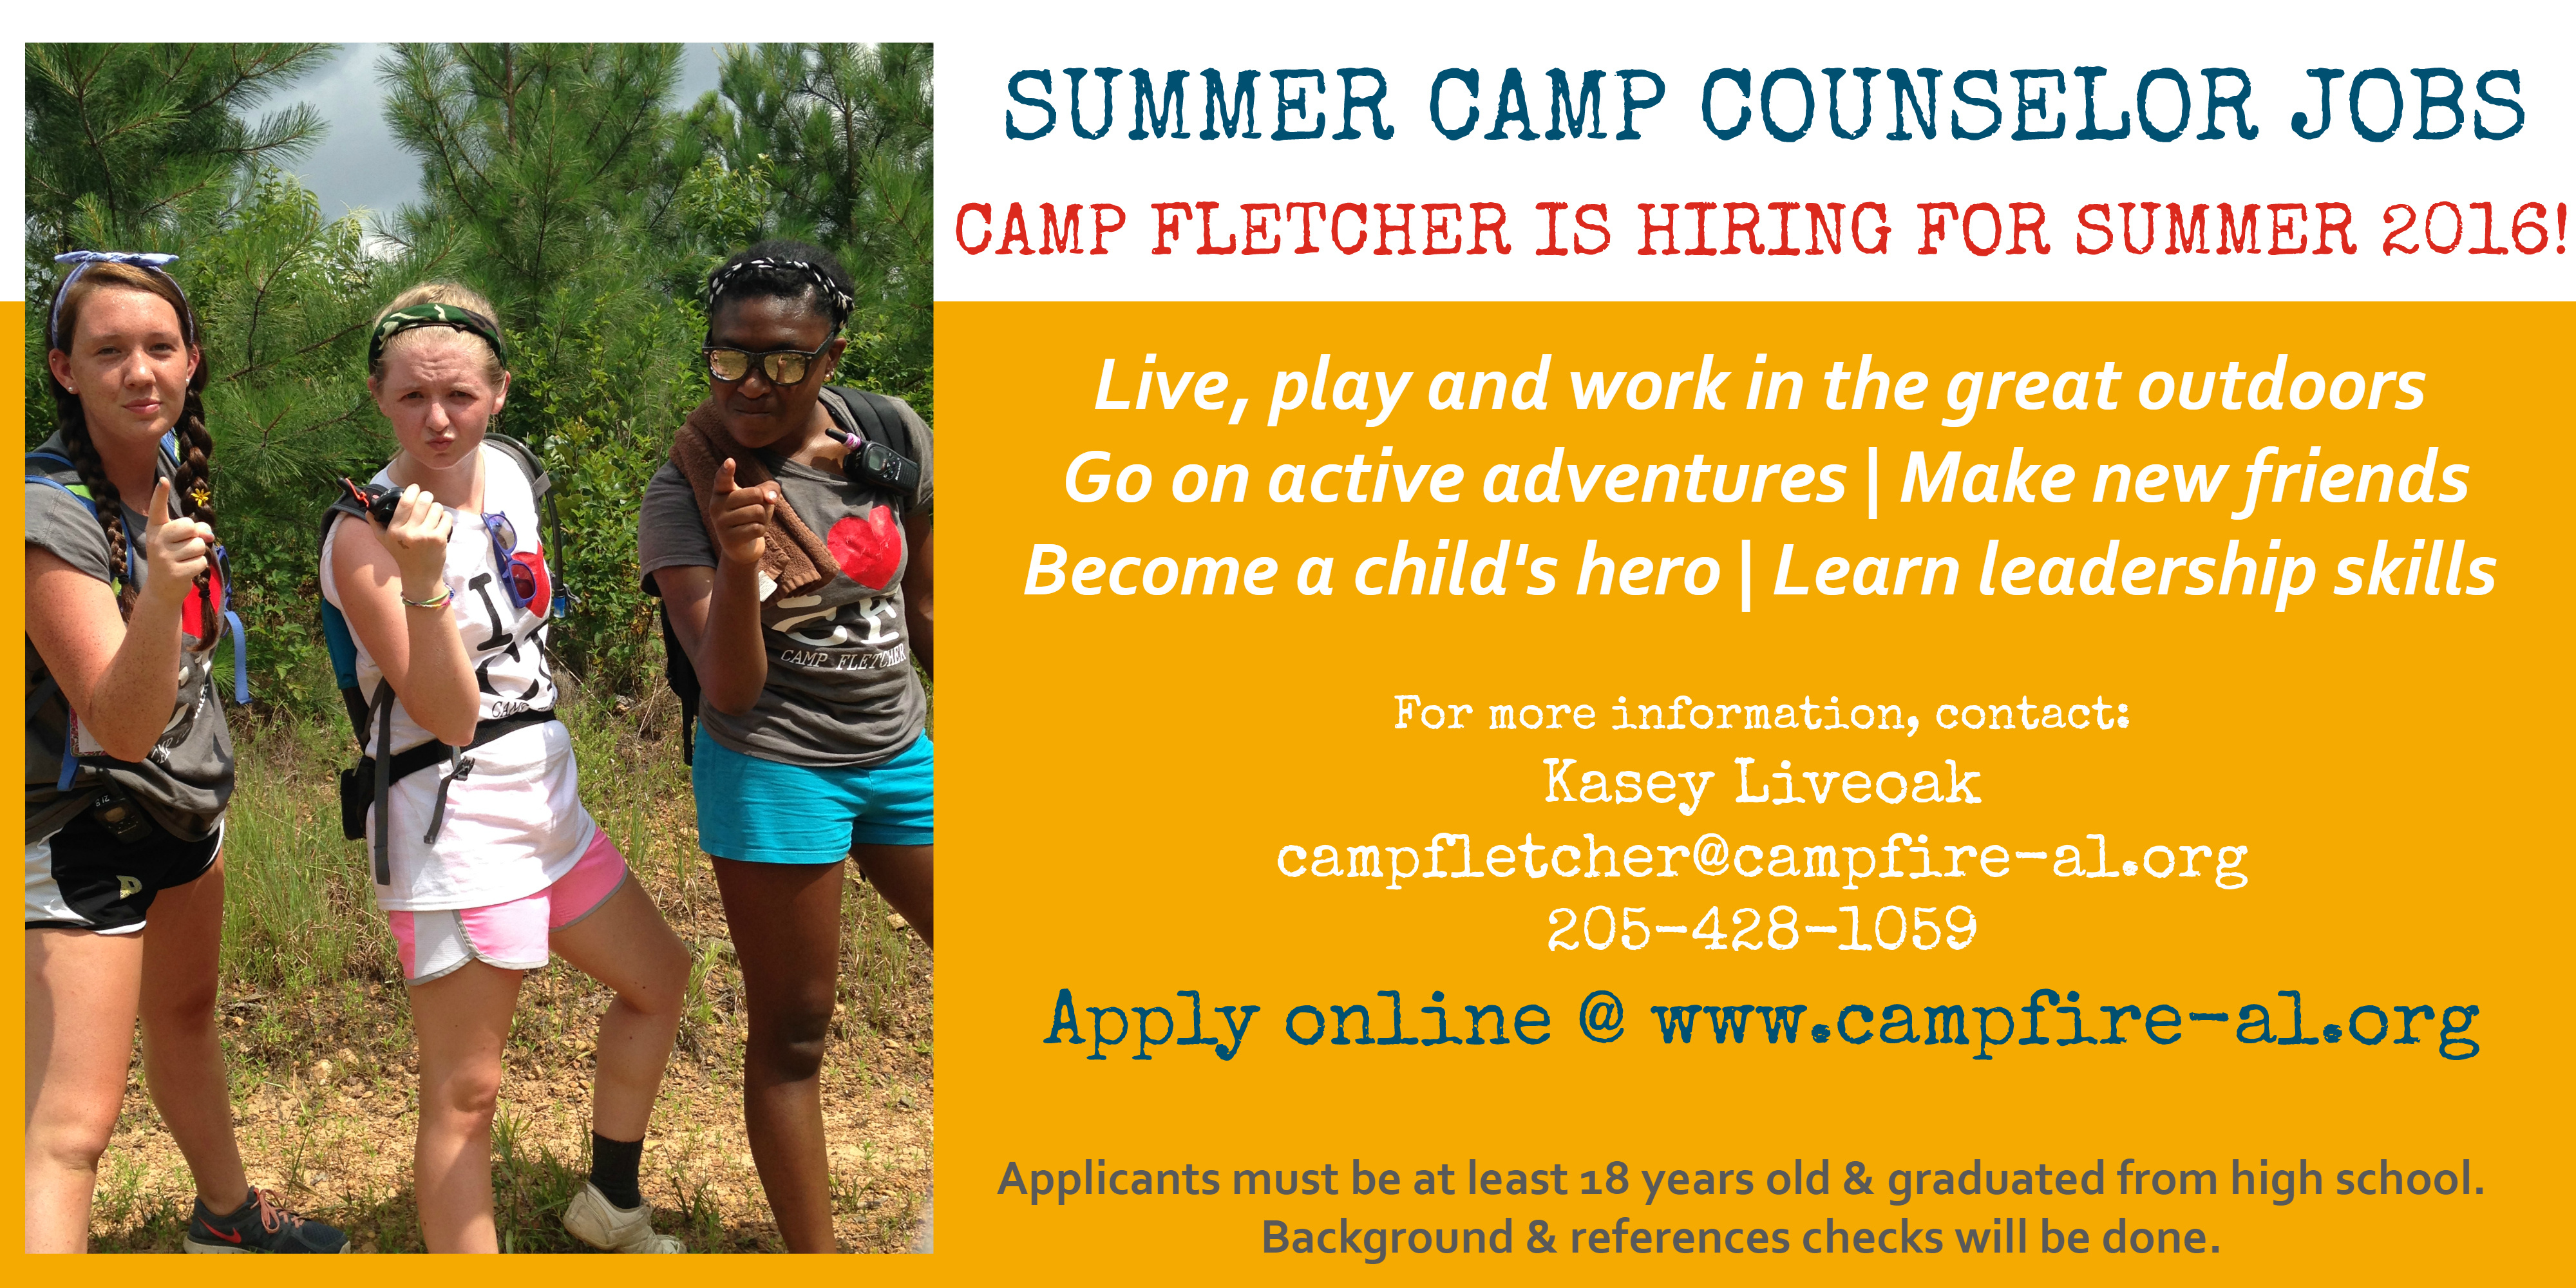 summer camp counselor jobs for highschool students